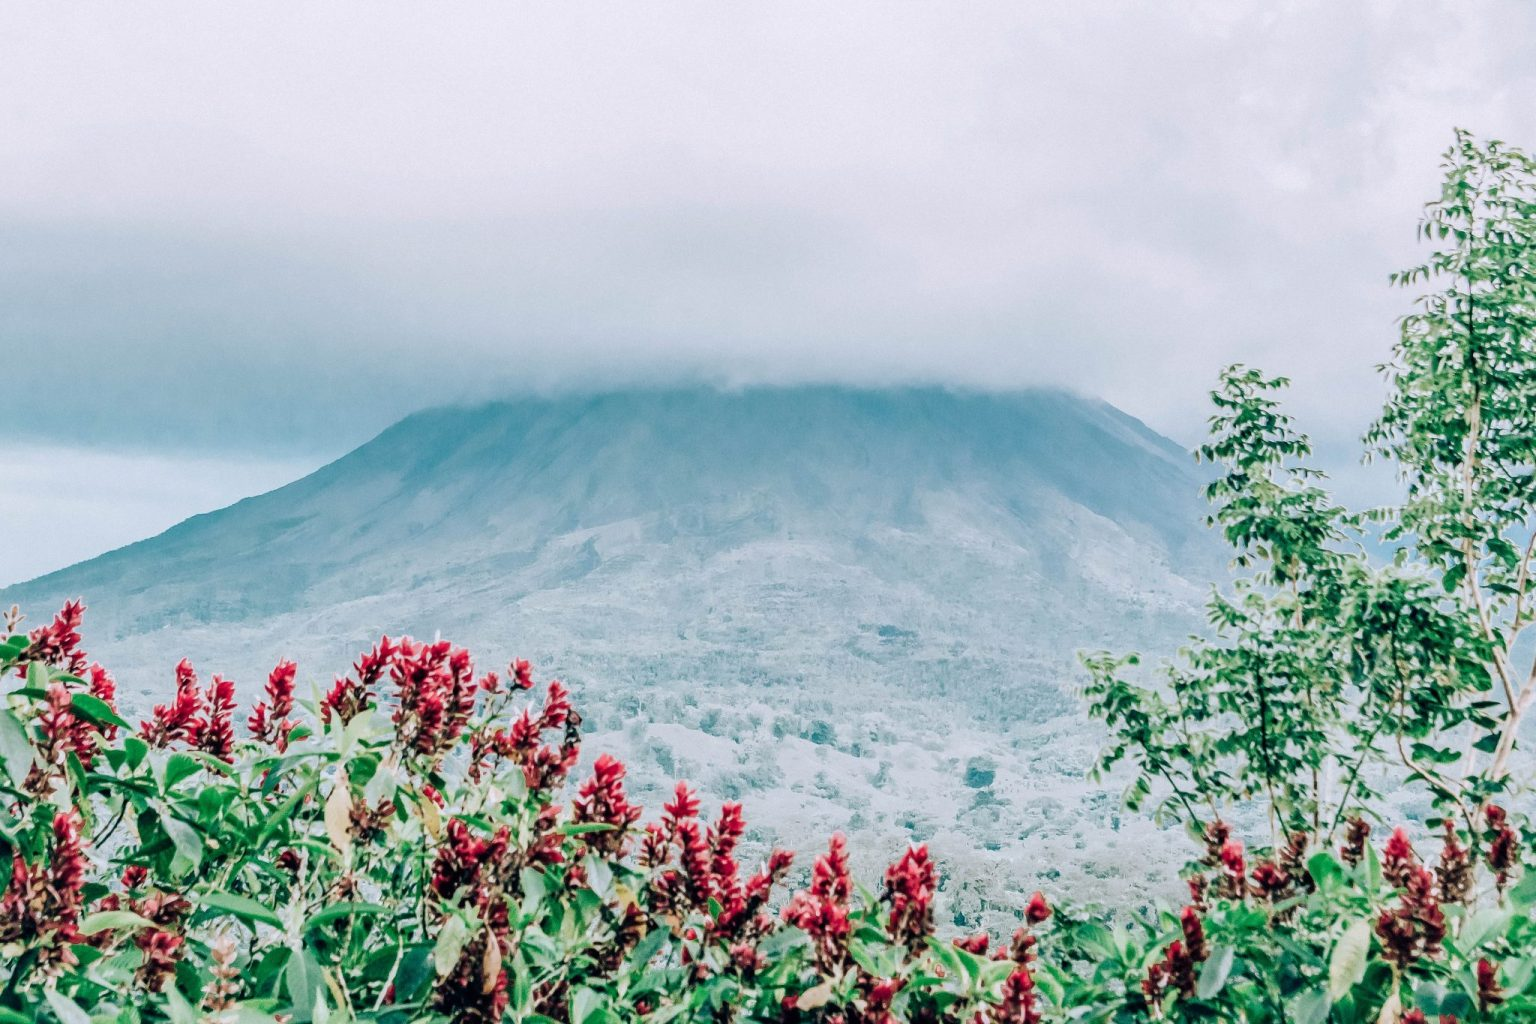 Things to do in Costa Rica with kids include a visit to the Arenal Volcano